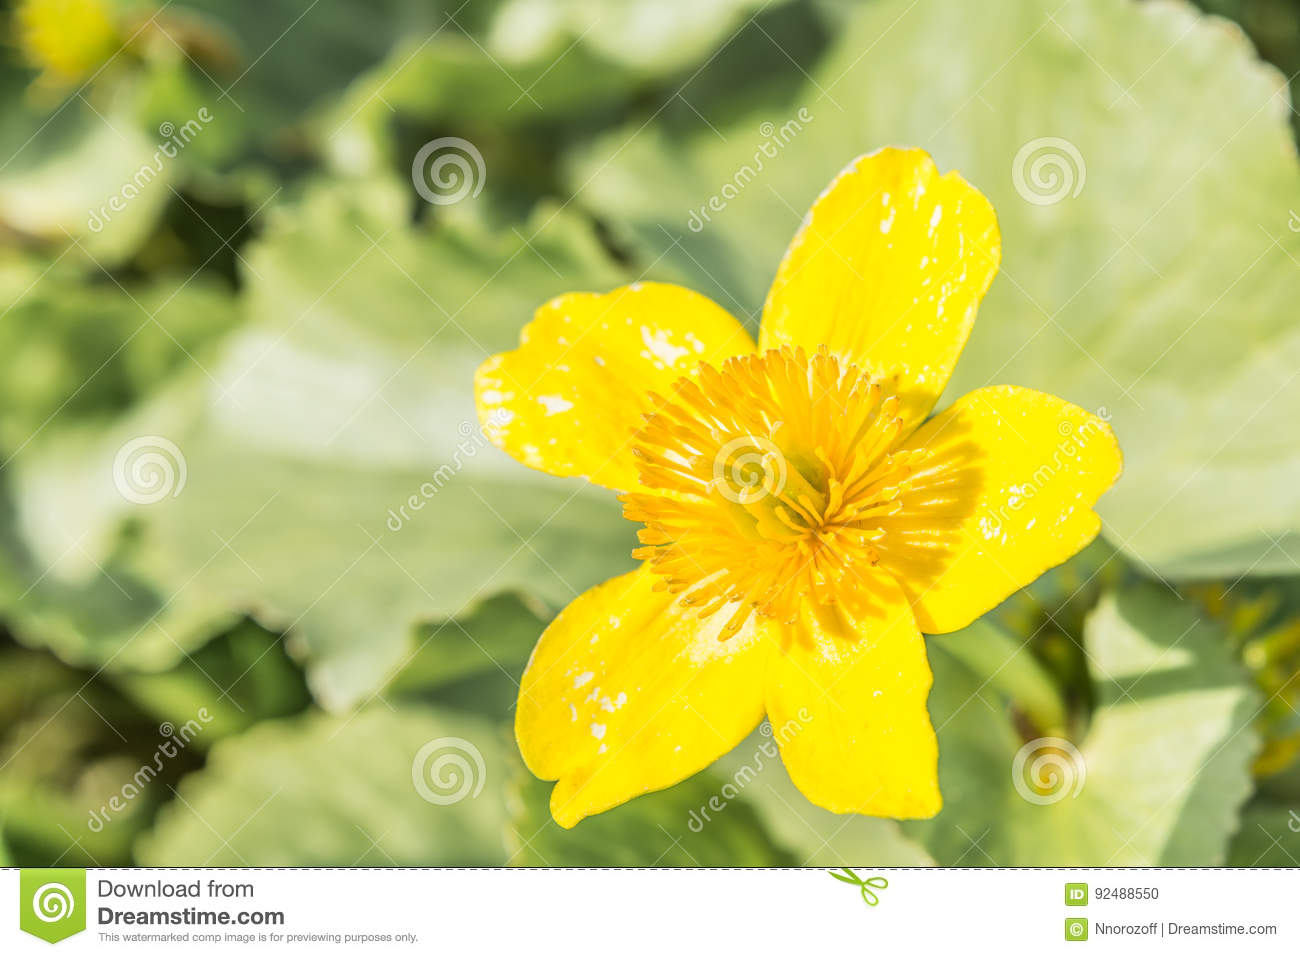 Yellow meadow flower with five petals on a background of vegetation yellow meadow flower with five petals on a background of vegetation mightylinksfo